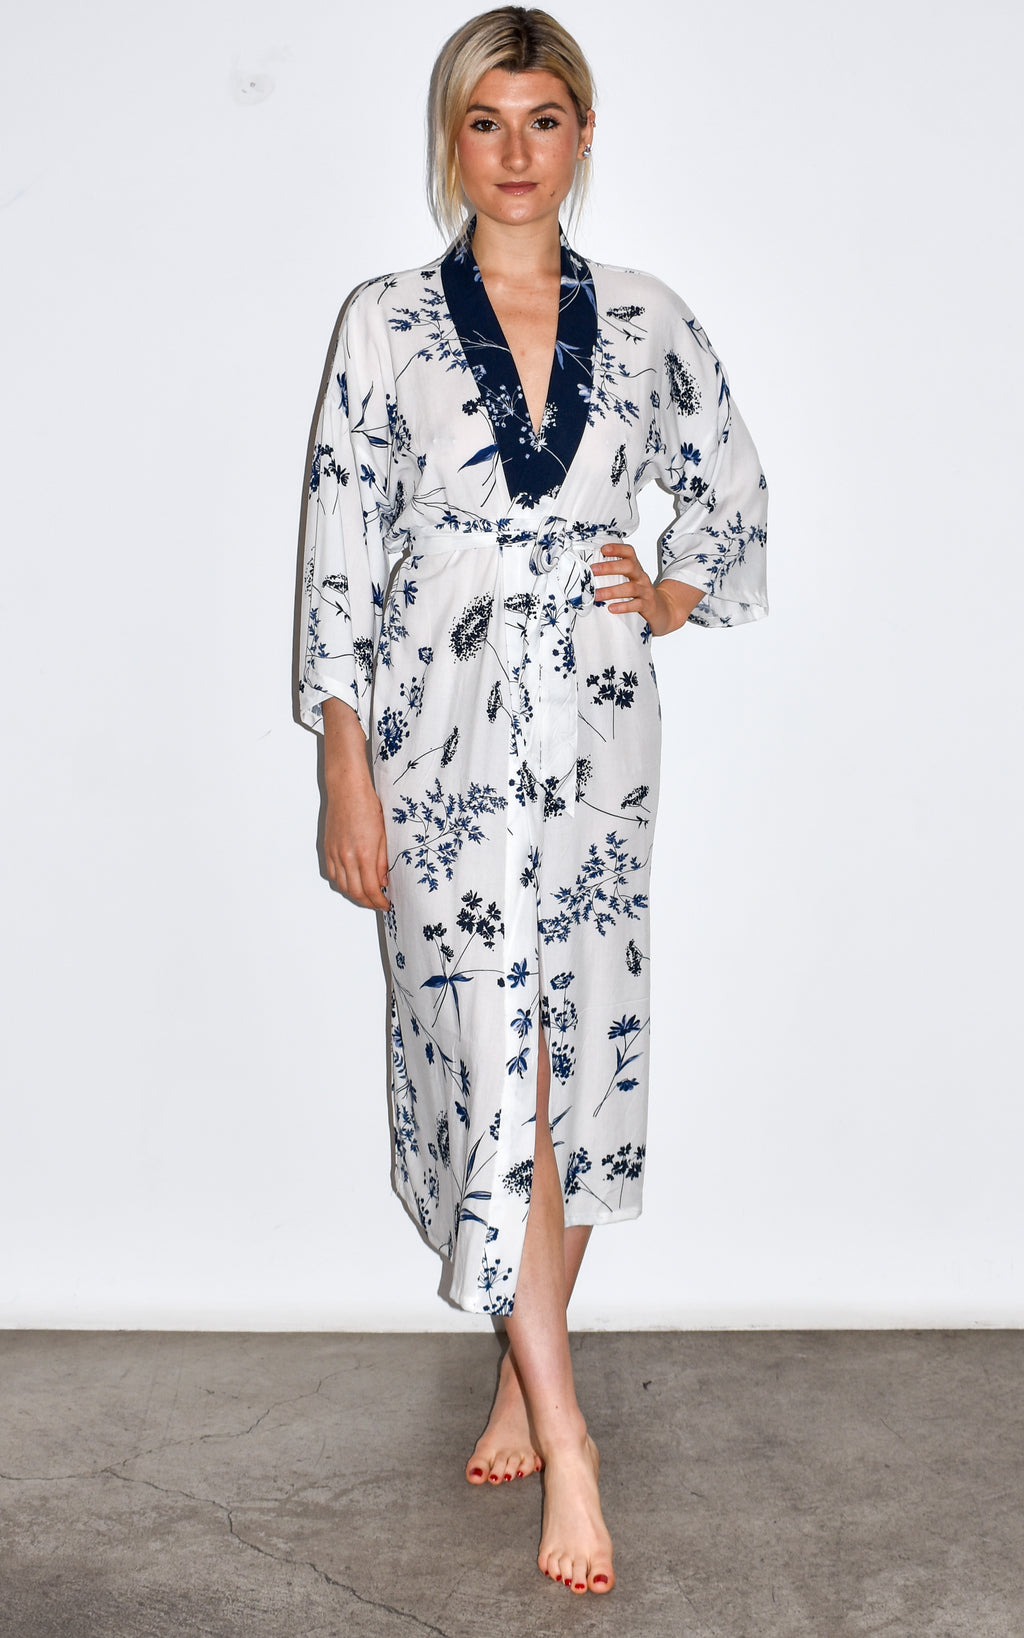 Kimono, robe, beach cover up handmade by women in Venice, CA.